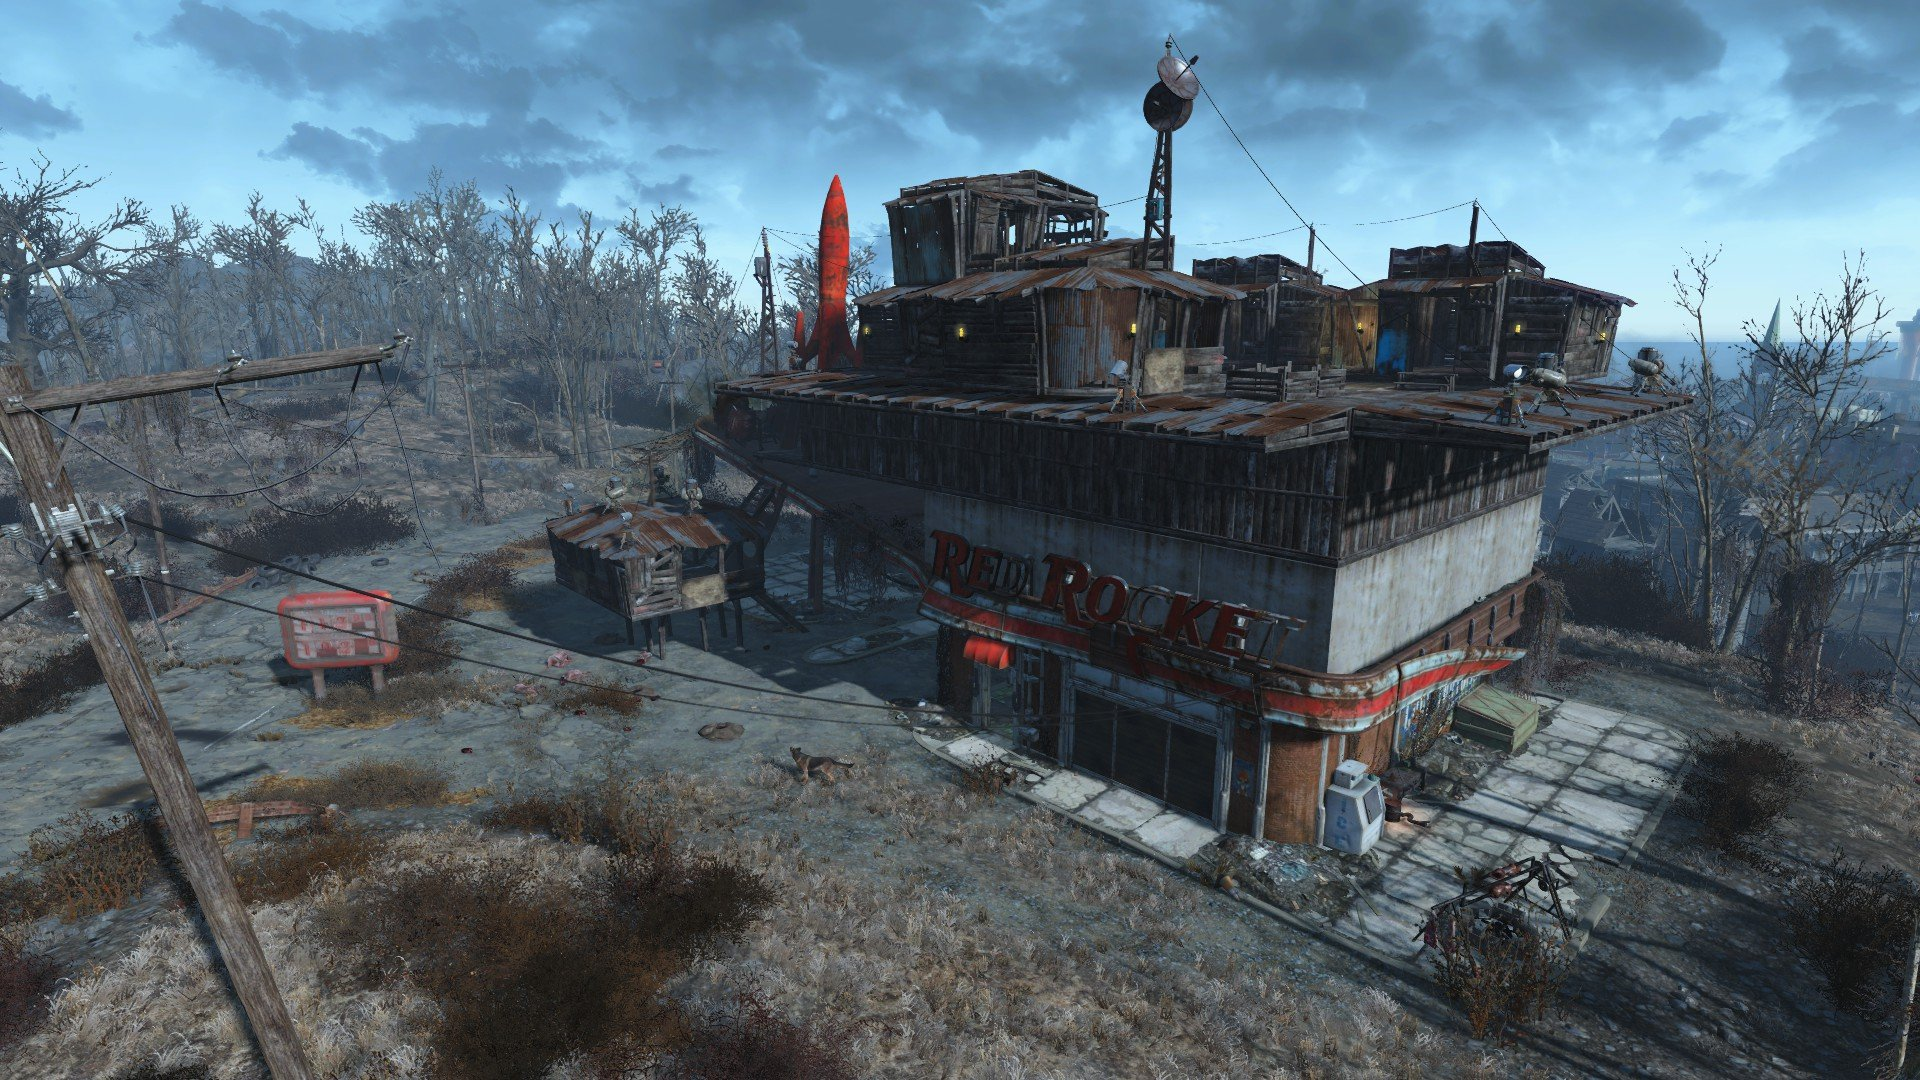 Fallout 4 offers a nuclear wasteland for players to explore, and hazards including radiation.